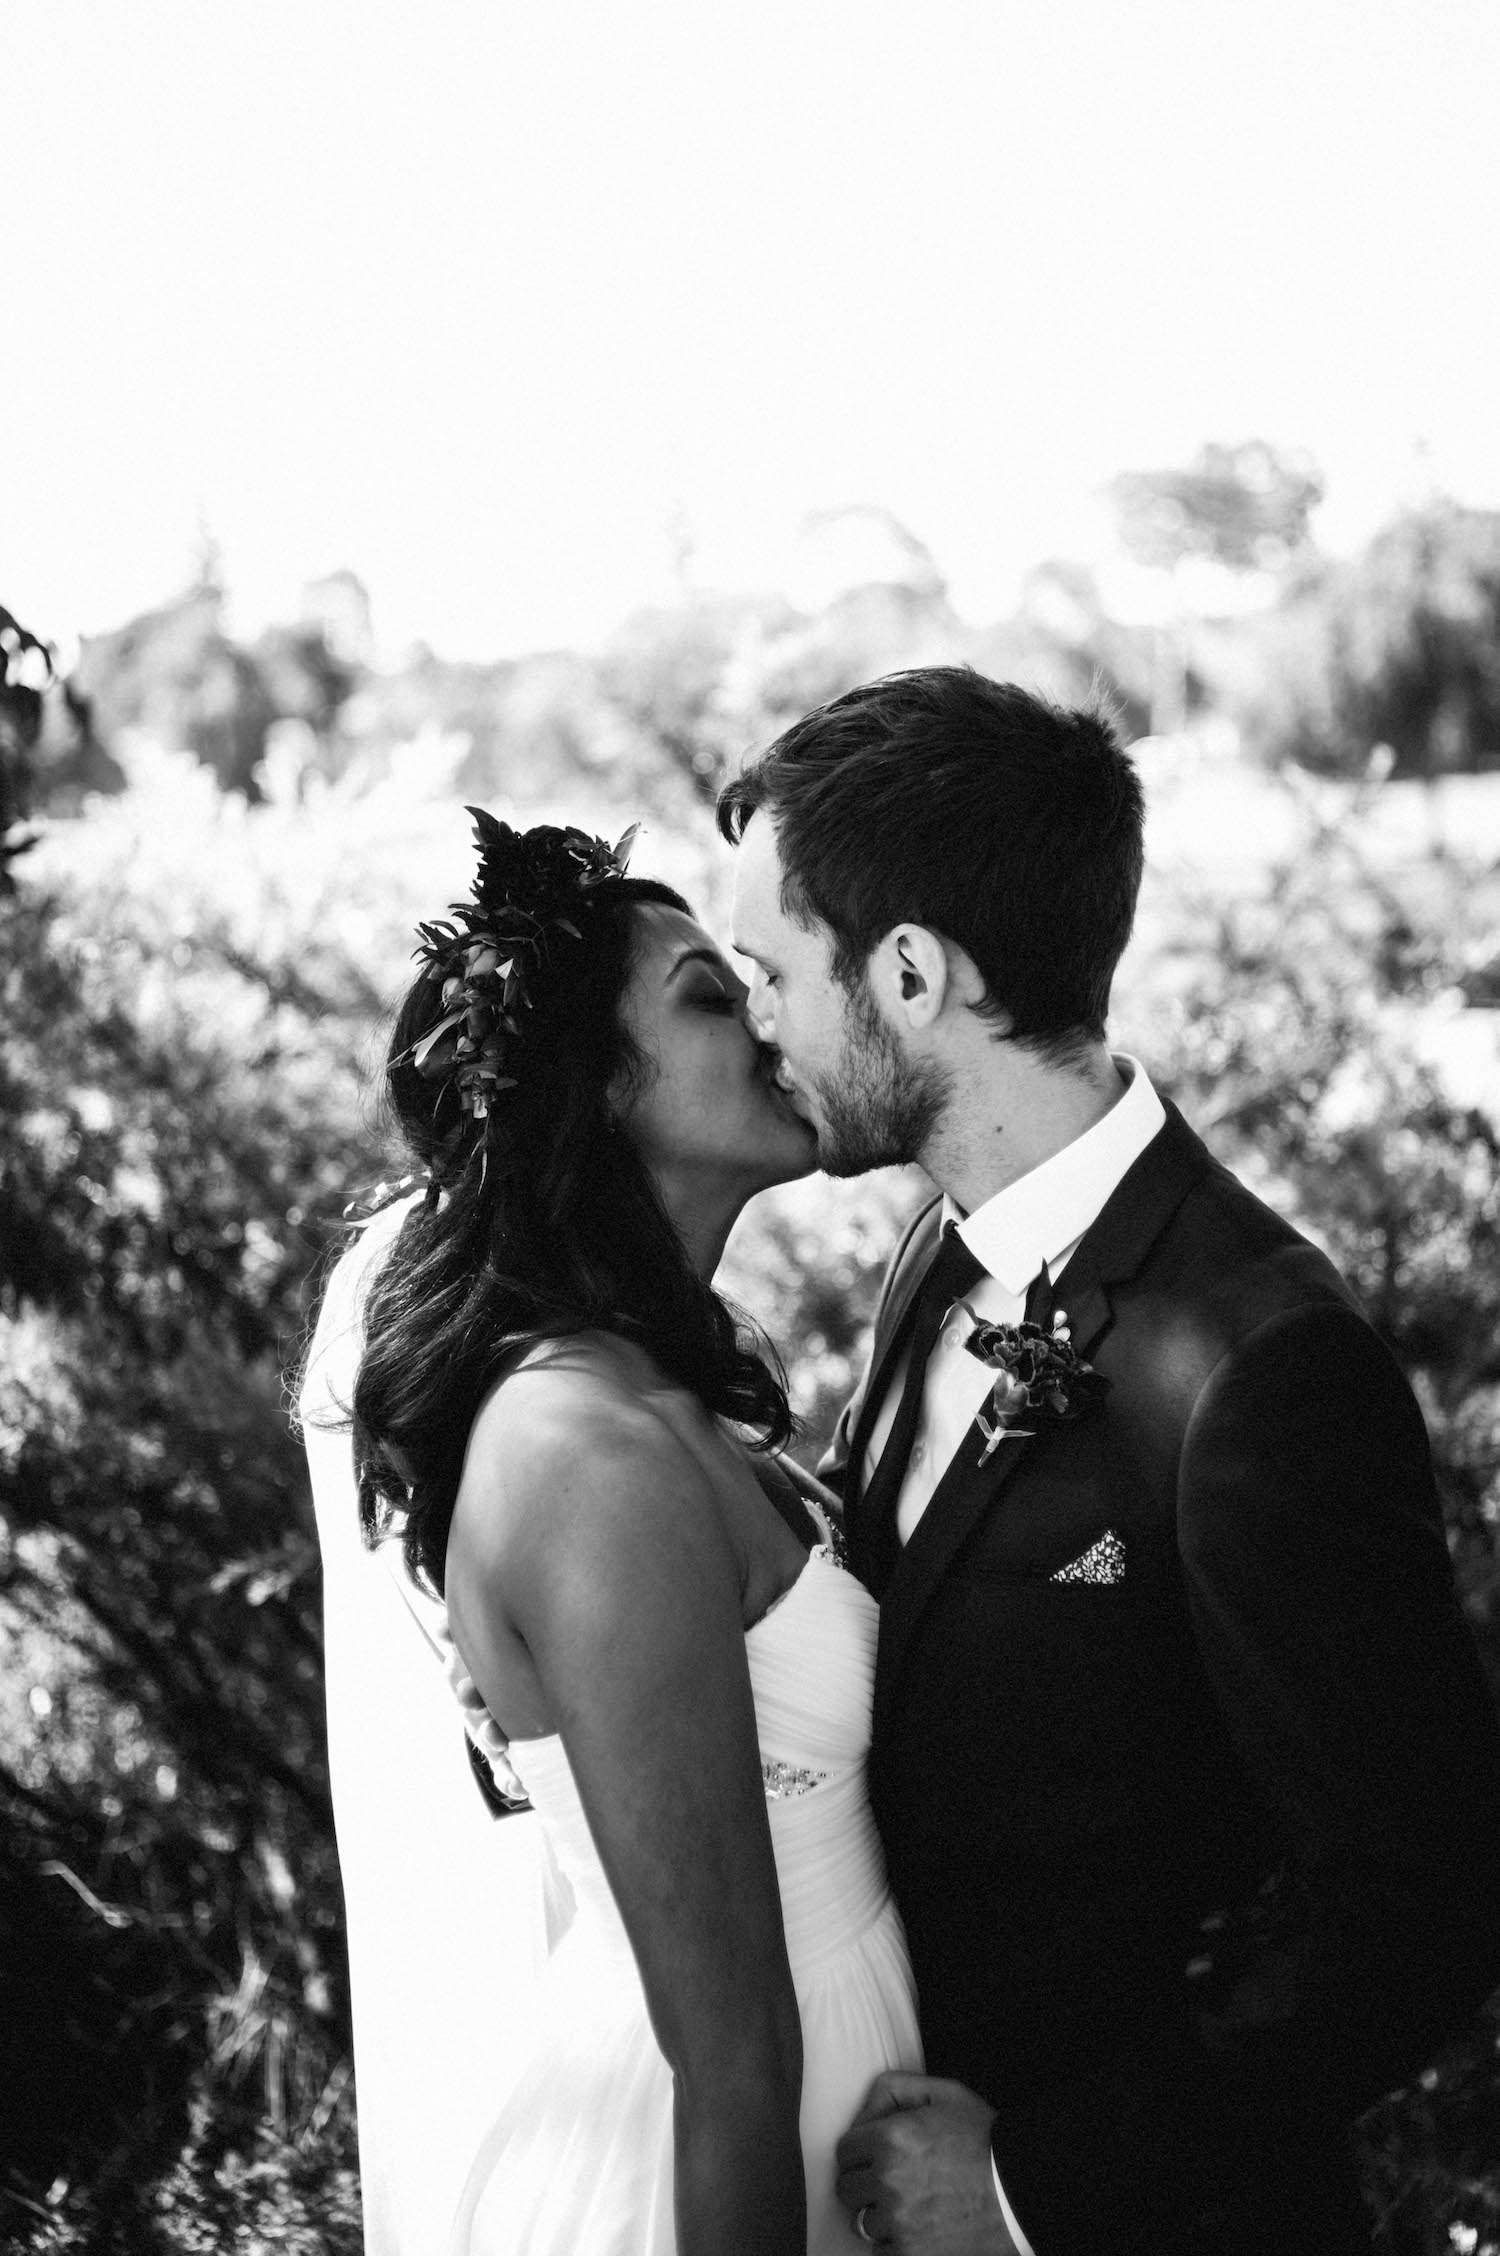 A black & white wedding photo of Jibb & Tripthi taken at Shenton Park, Western Australia.